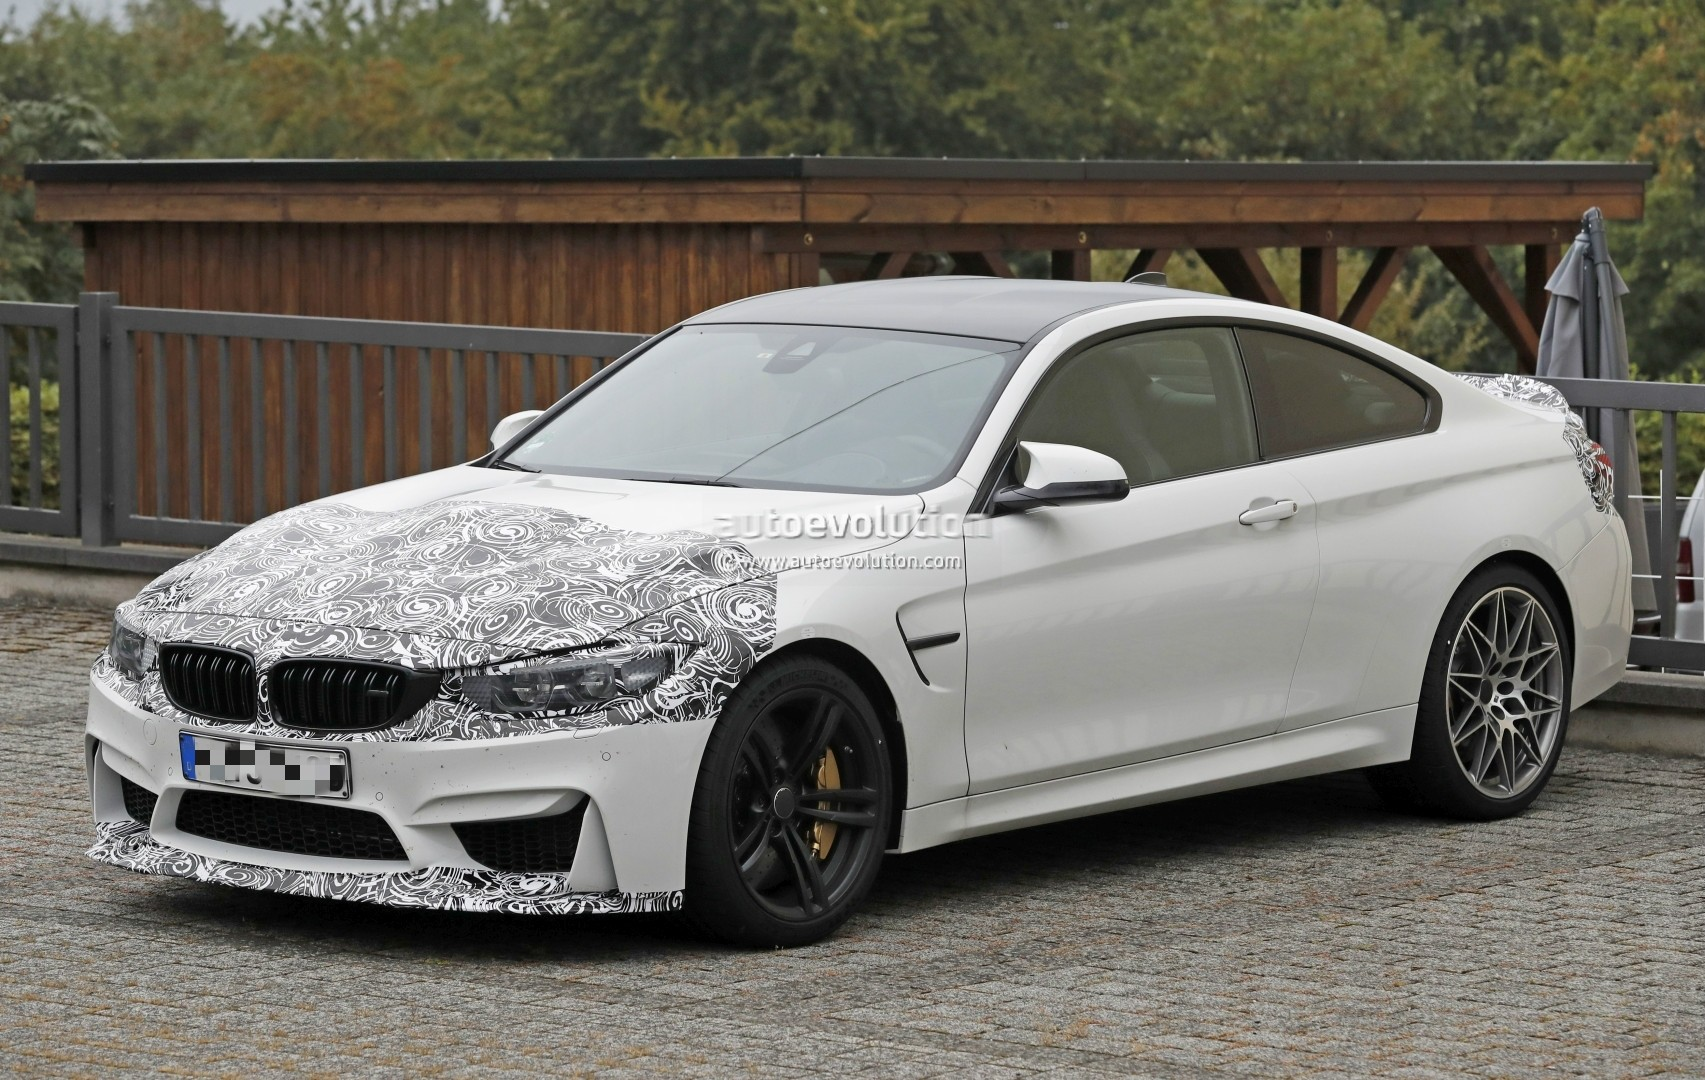 2018 Bmw M4 Facelift Cs Special Edition Spied Shows Aggressive Aerodynamics Autoevolution